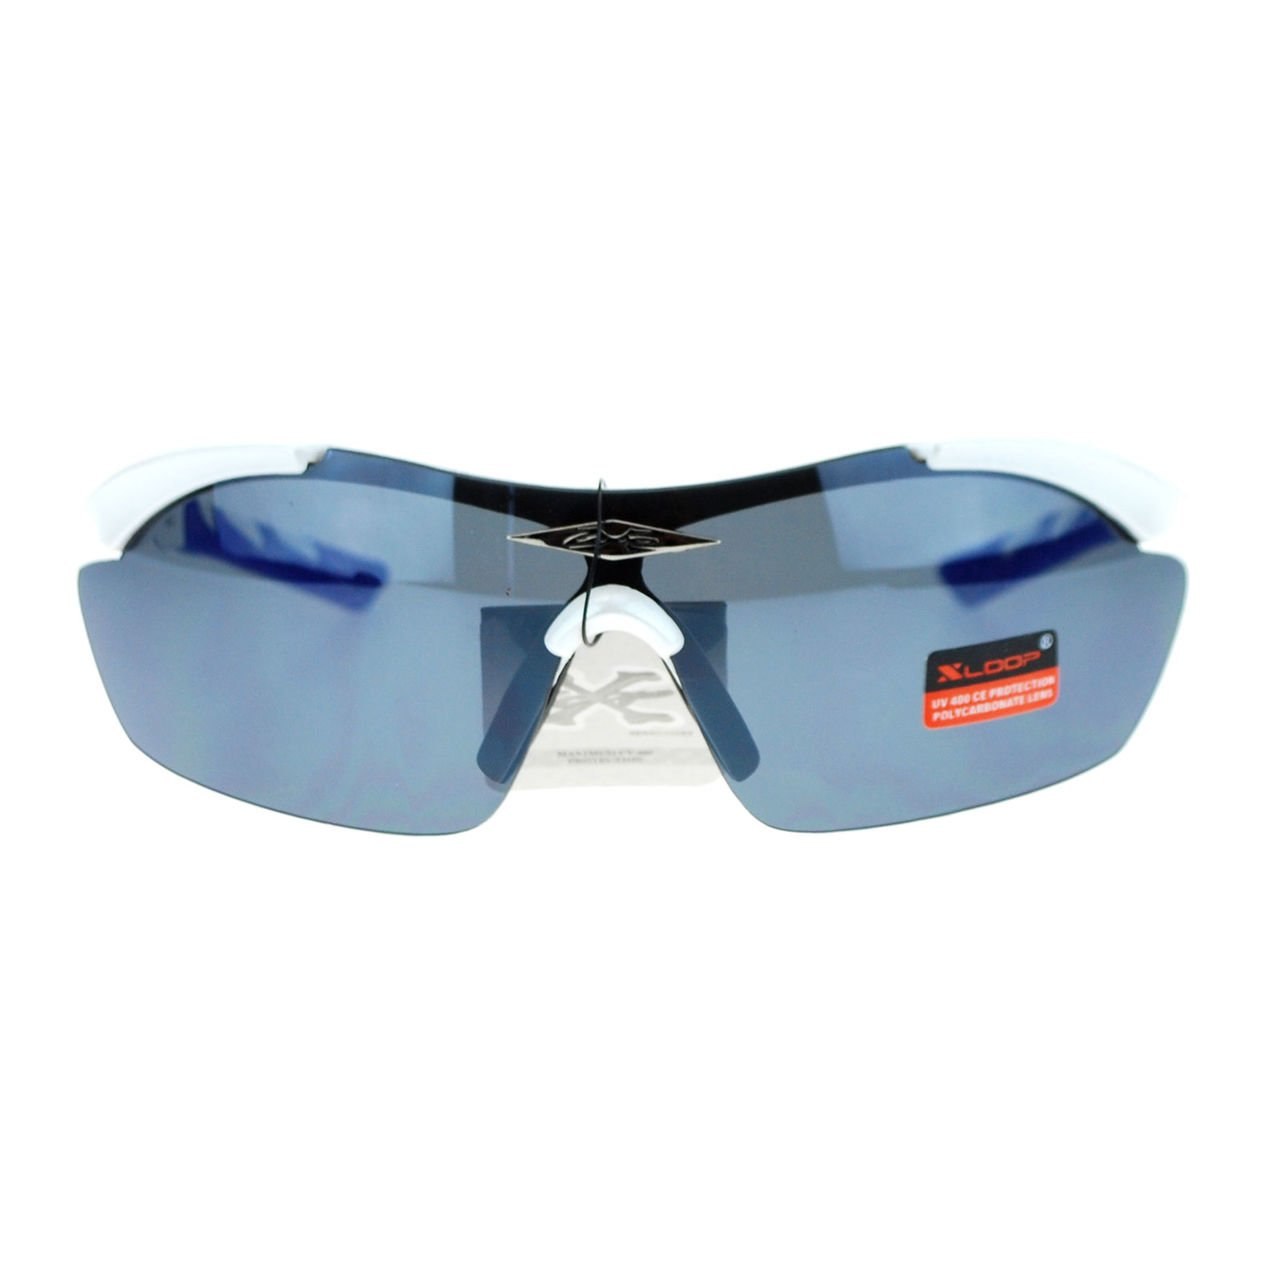 Xloop Sports Sunglasses Half Rim Rubber Nose//Temple Wrap Around UV 400